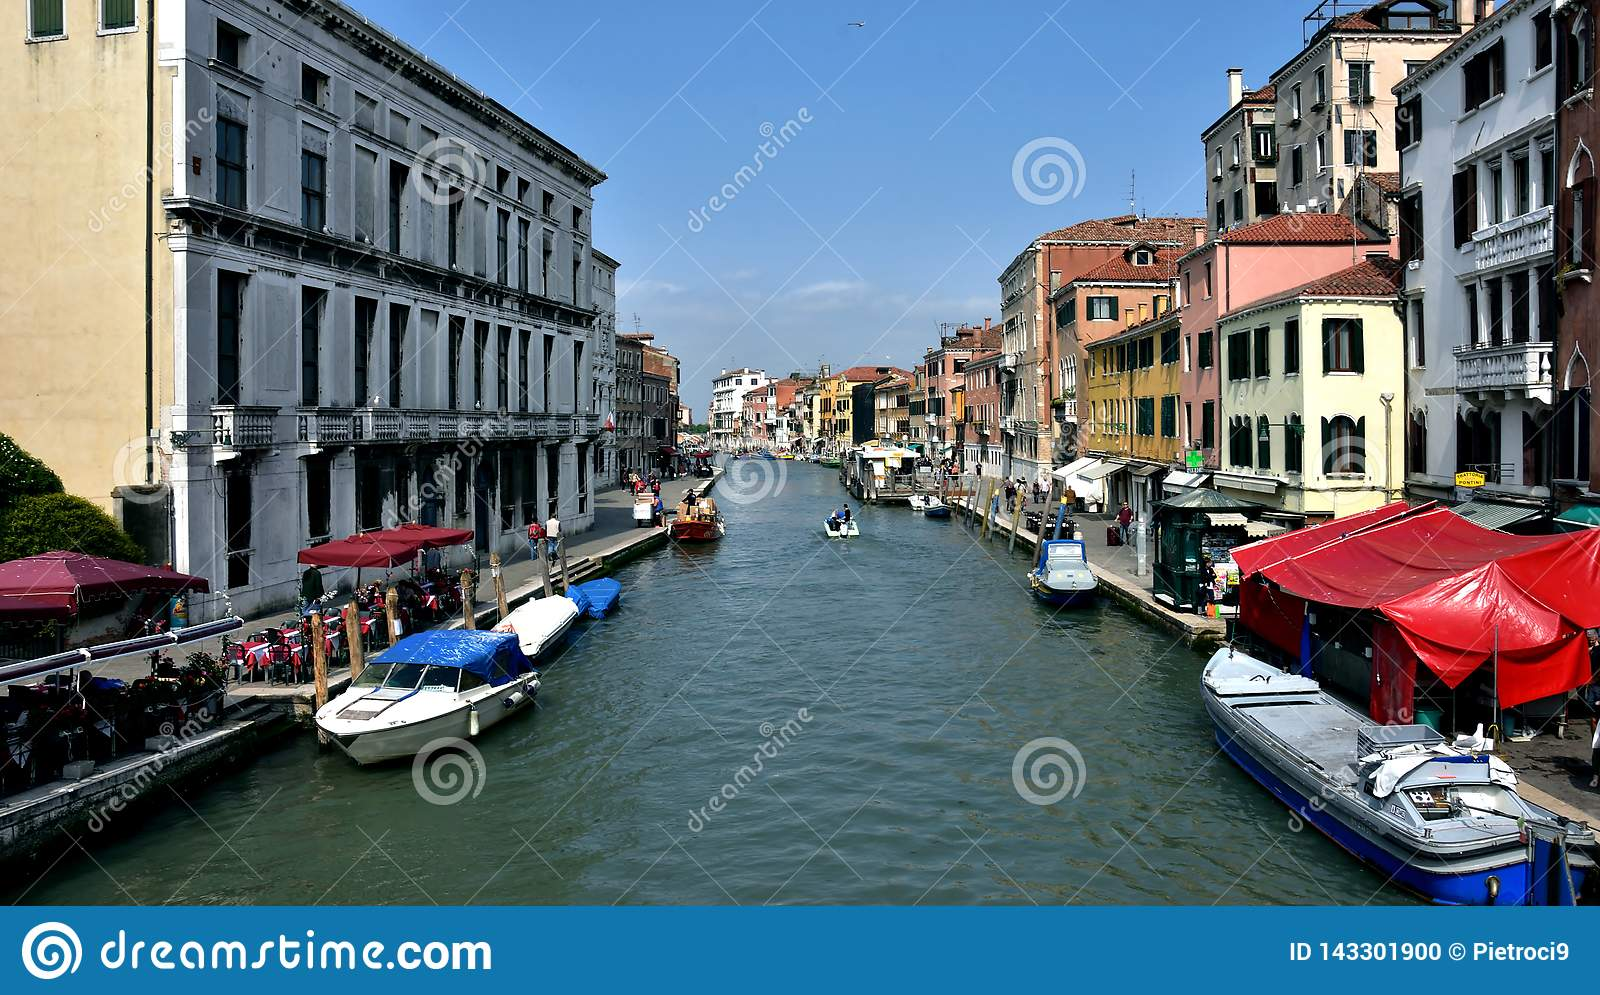 Venice, its canals and its colors.